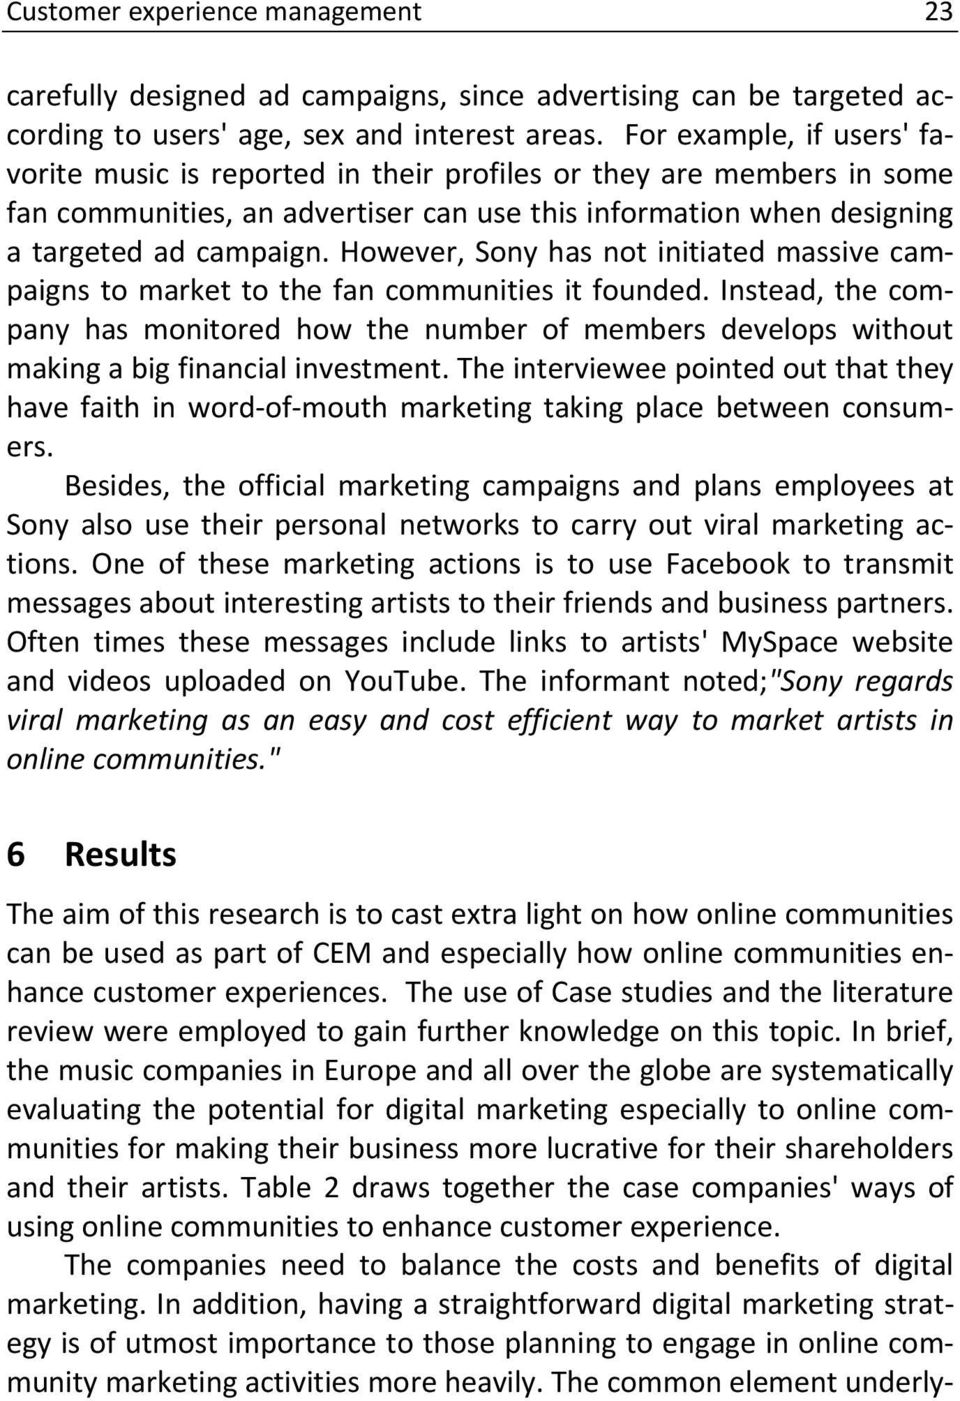 However, Sony has not initiated massive campaigns to market to the fan communities it founded.